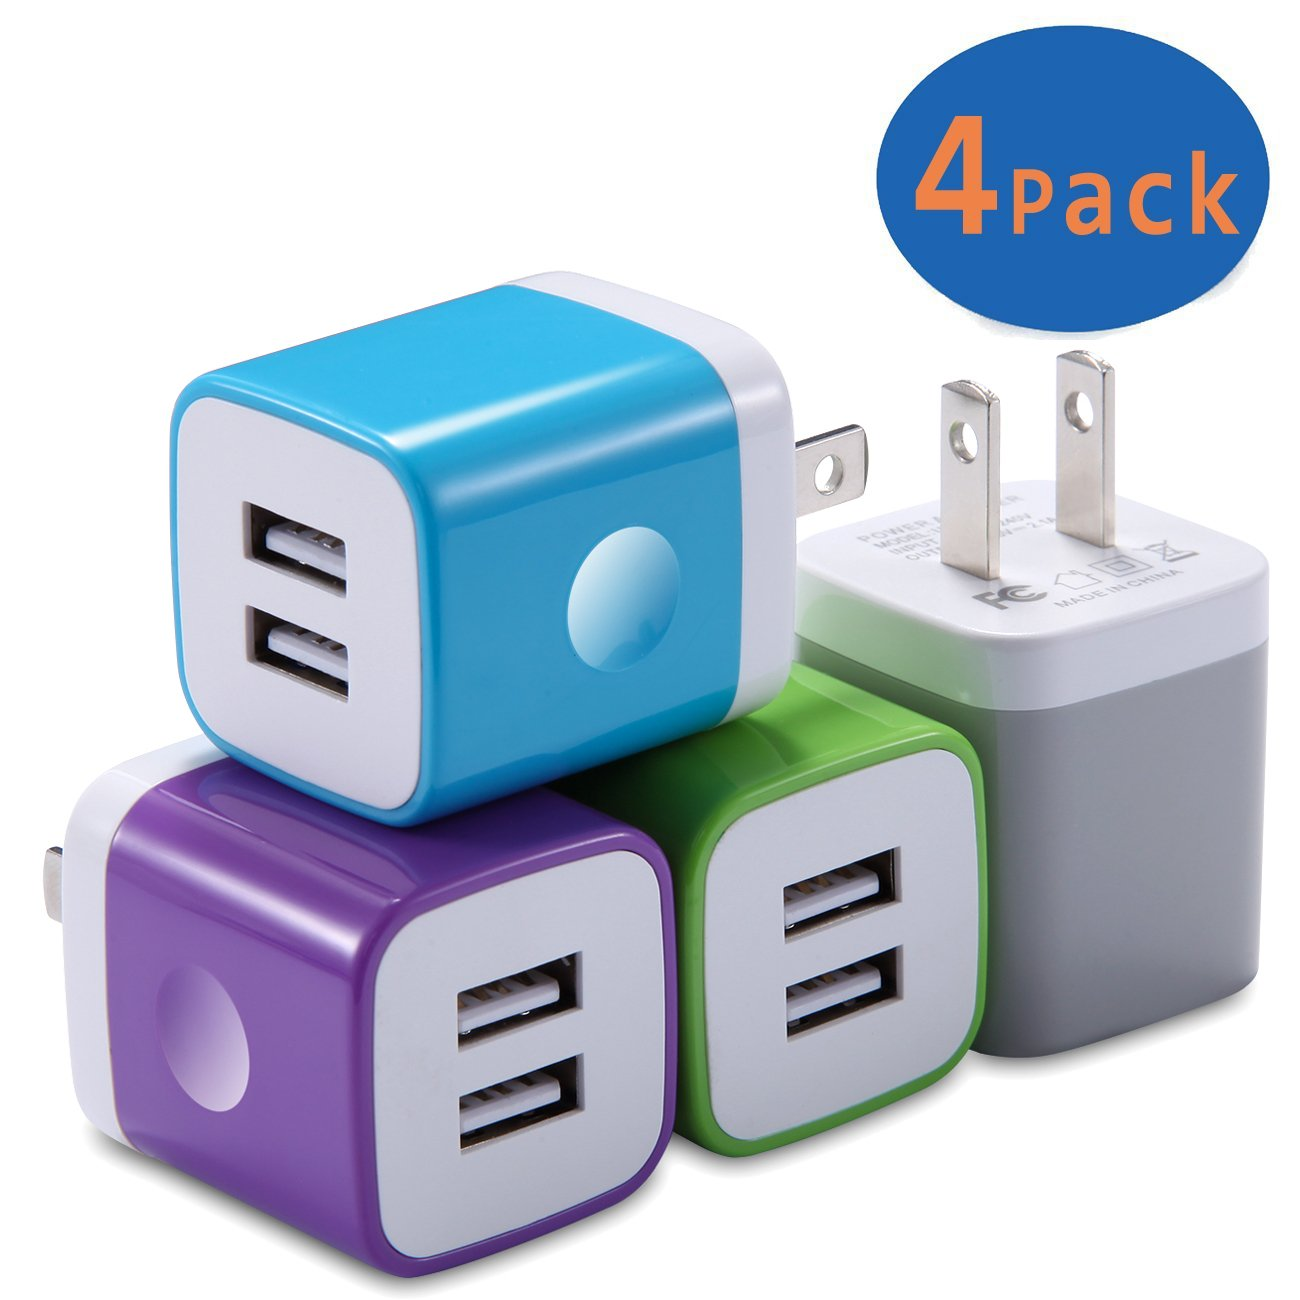 USB Wall Charger, Charging Block X-EDITION 4-Pack 2.1A Dual Port USB Power Adapter Wall Charger Plug Cube for iPhone X/8/7/6 Plus, iPad, Samsung Galaxy S8 S7 S6 Edge, LG, ZTE, Moto, AndroidMore